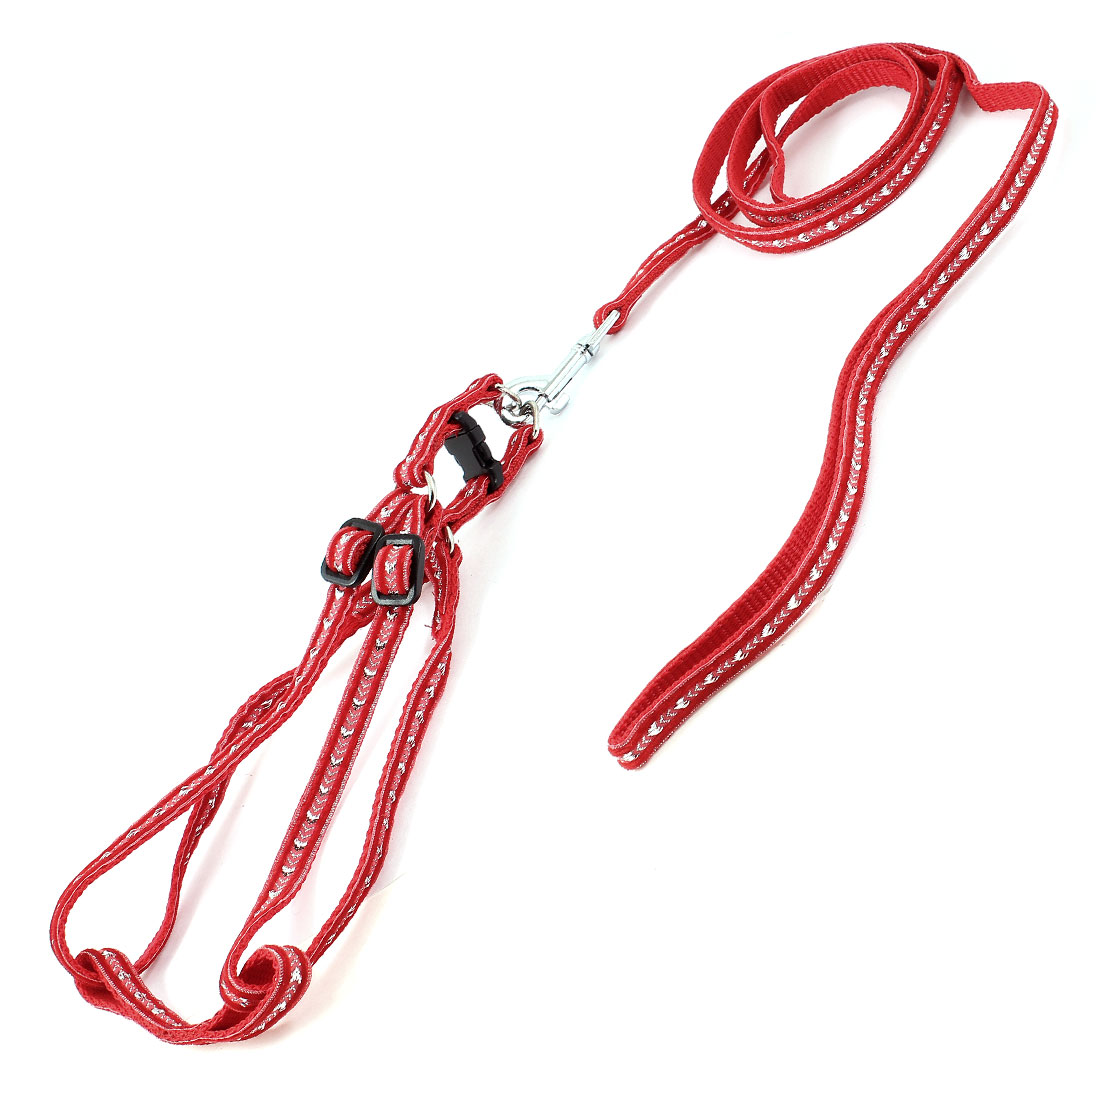 Trigger Hook Release Buckle Adjustable Harness Halter Leash Red Silver Tone for Pet Dog Yorkie